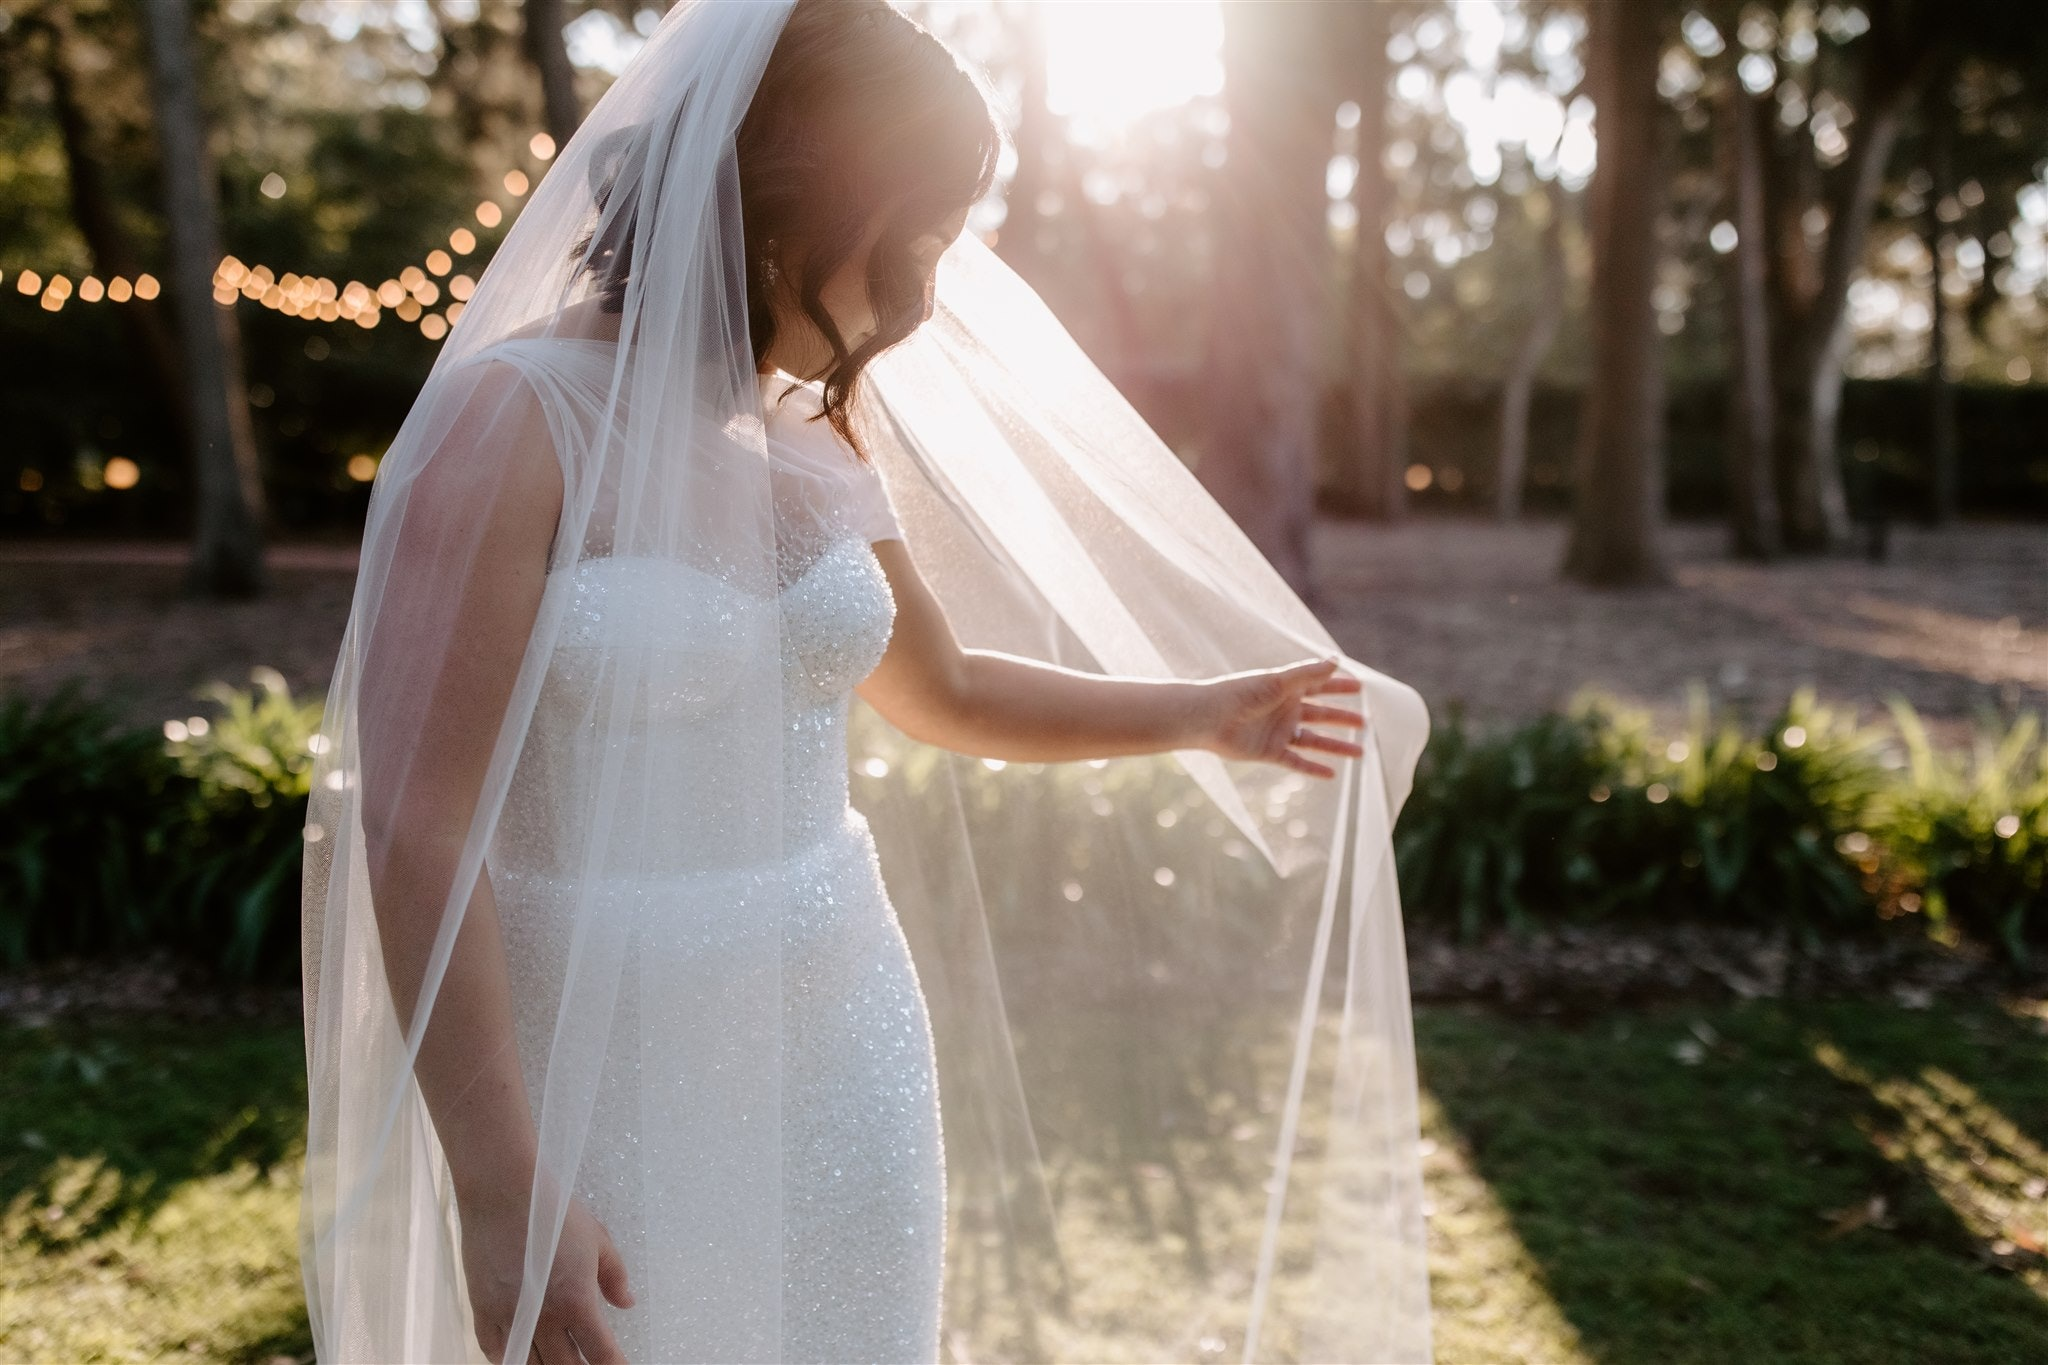 Bride holding out her veil with the sun shining in the background